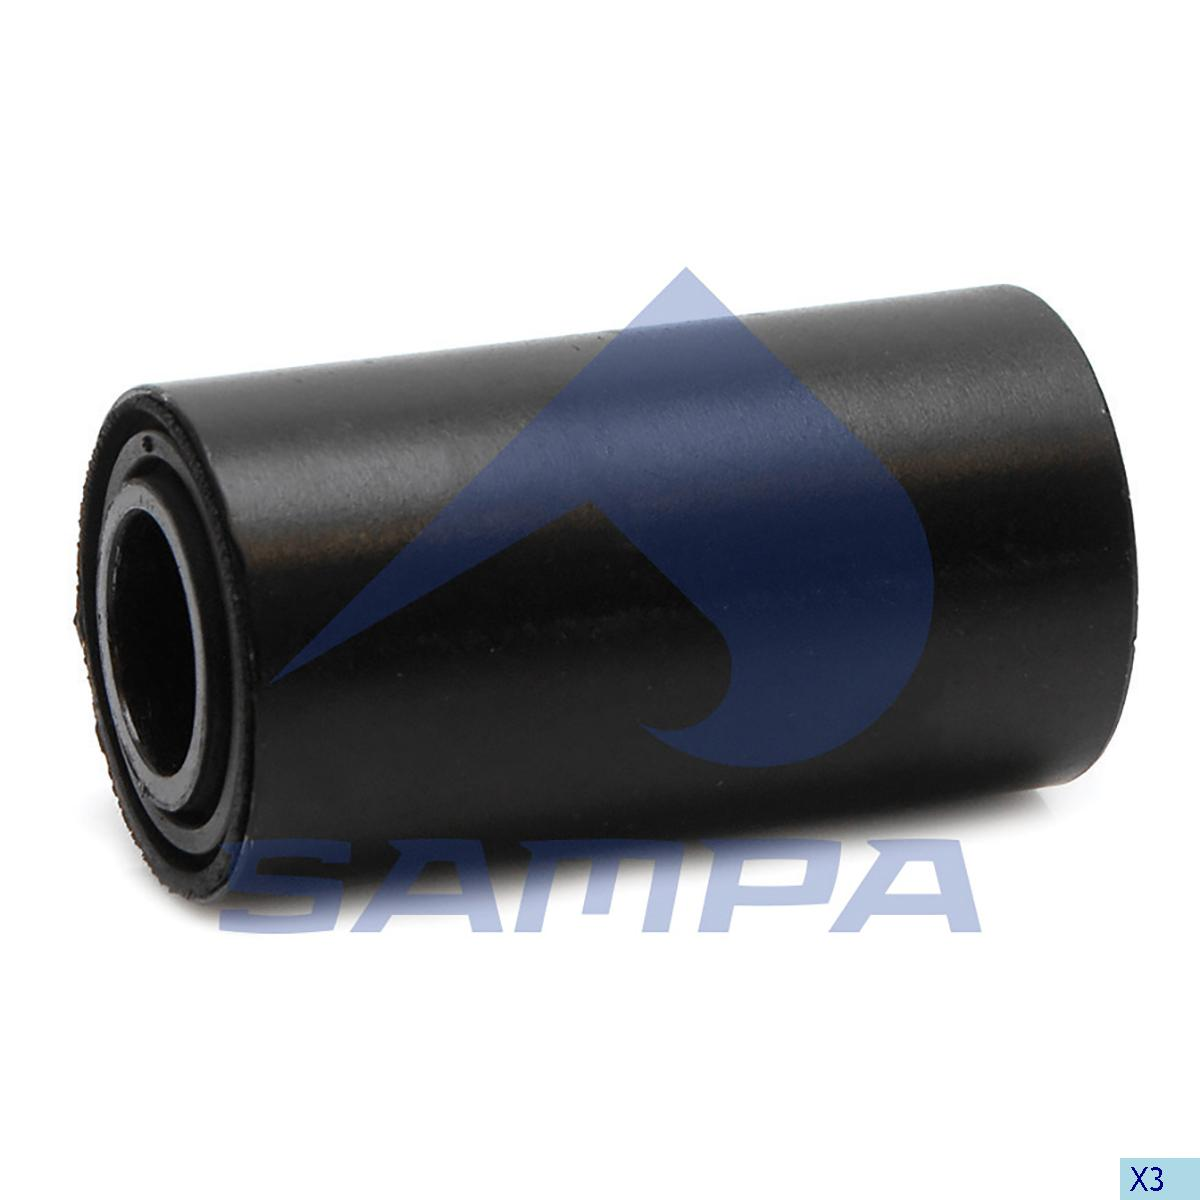 Rubber Bushing, Spring, Freightliner, Suspension